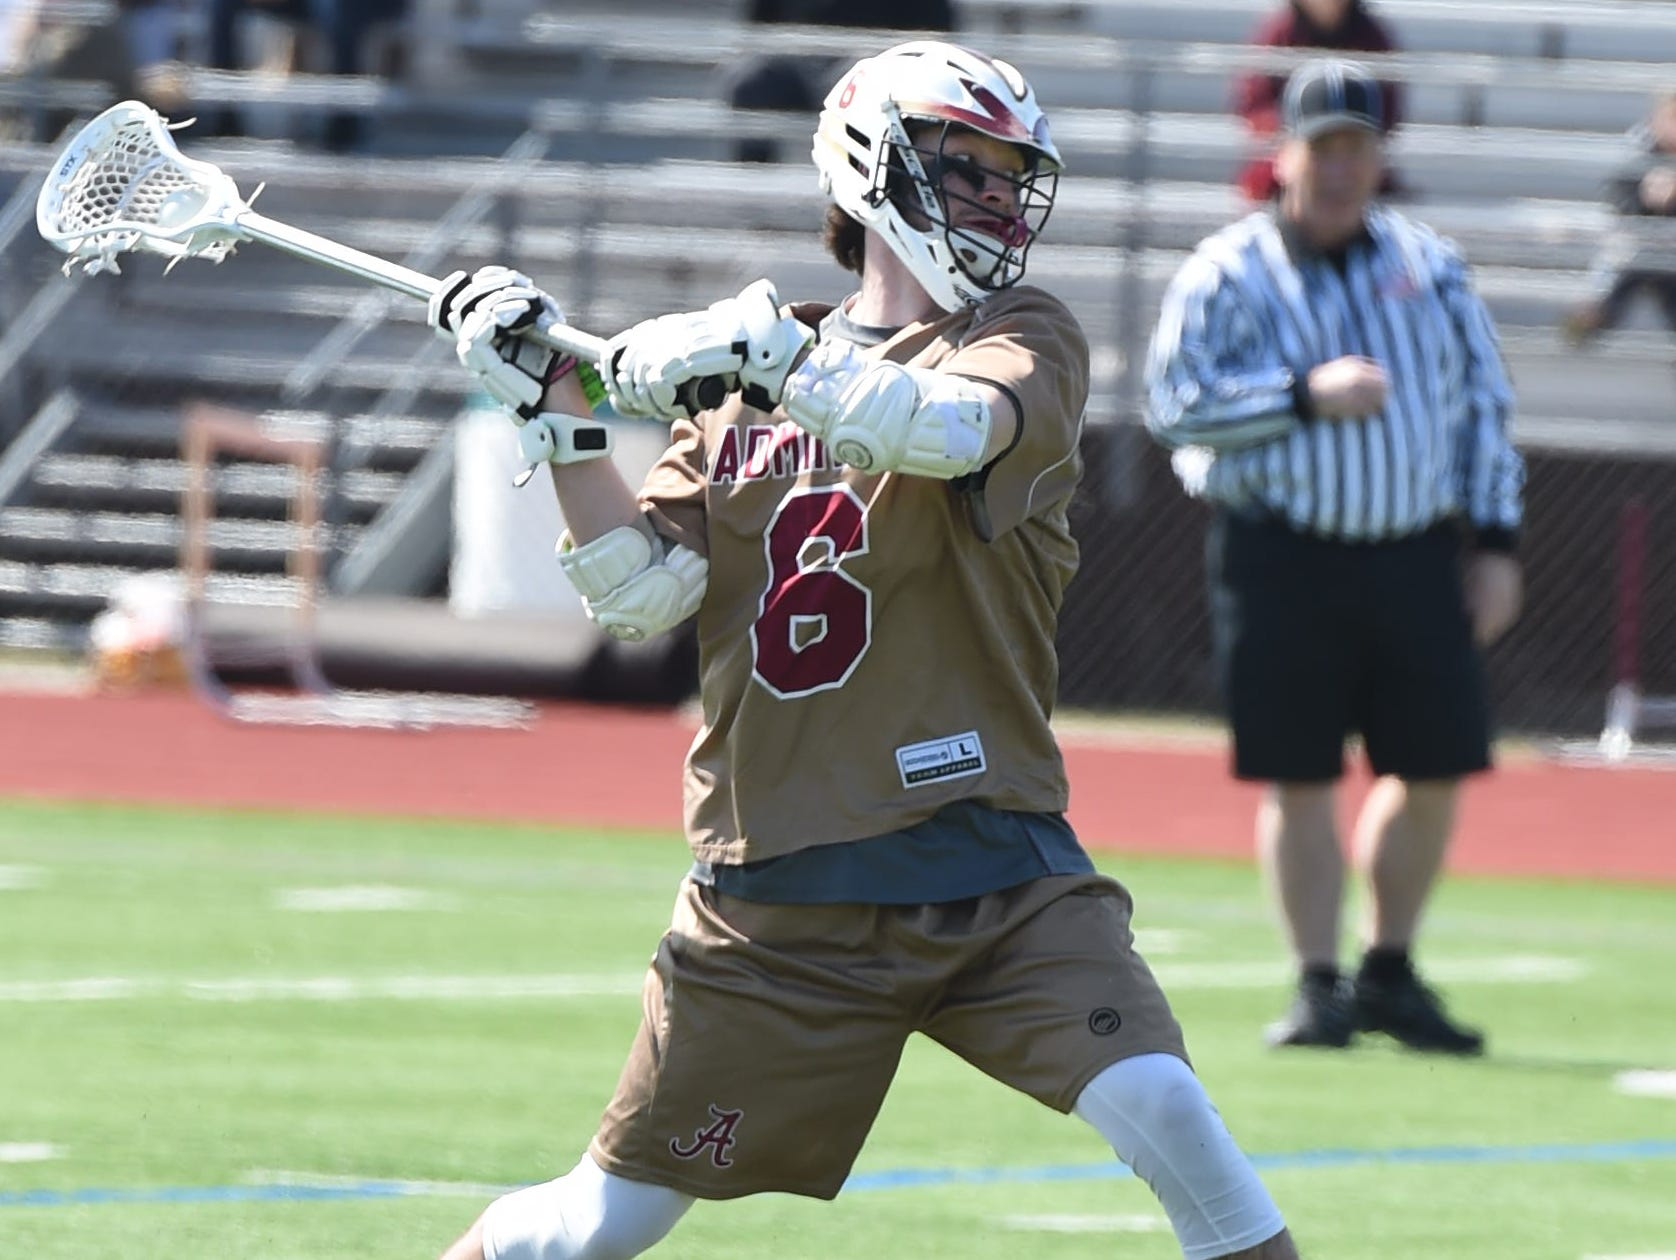 Arlington's Kevin Litchauer takes a shot during Tuesday's game versus Putnam Valley at Arlington.